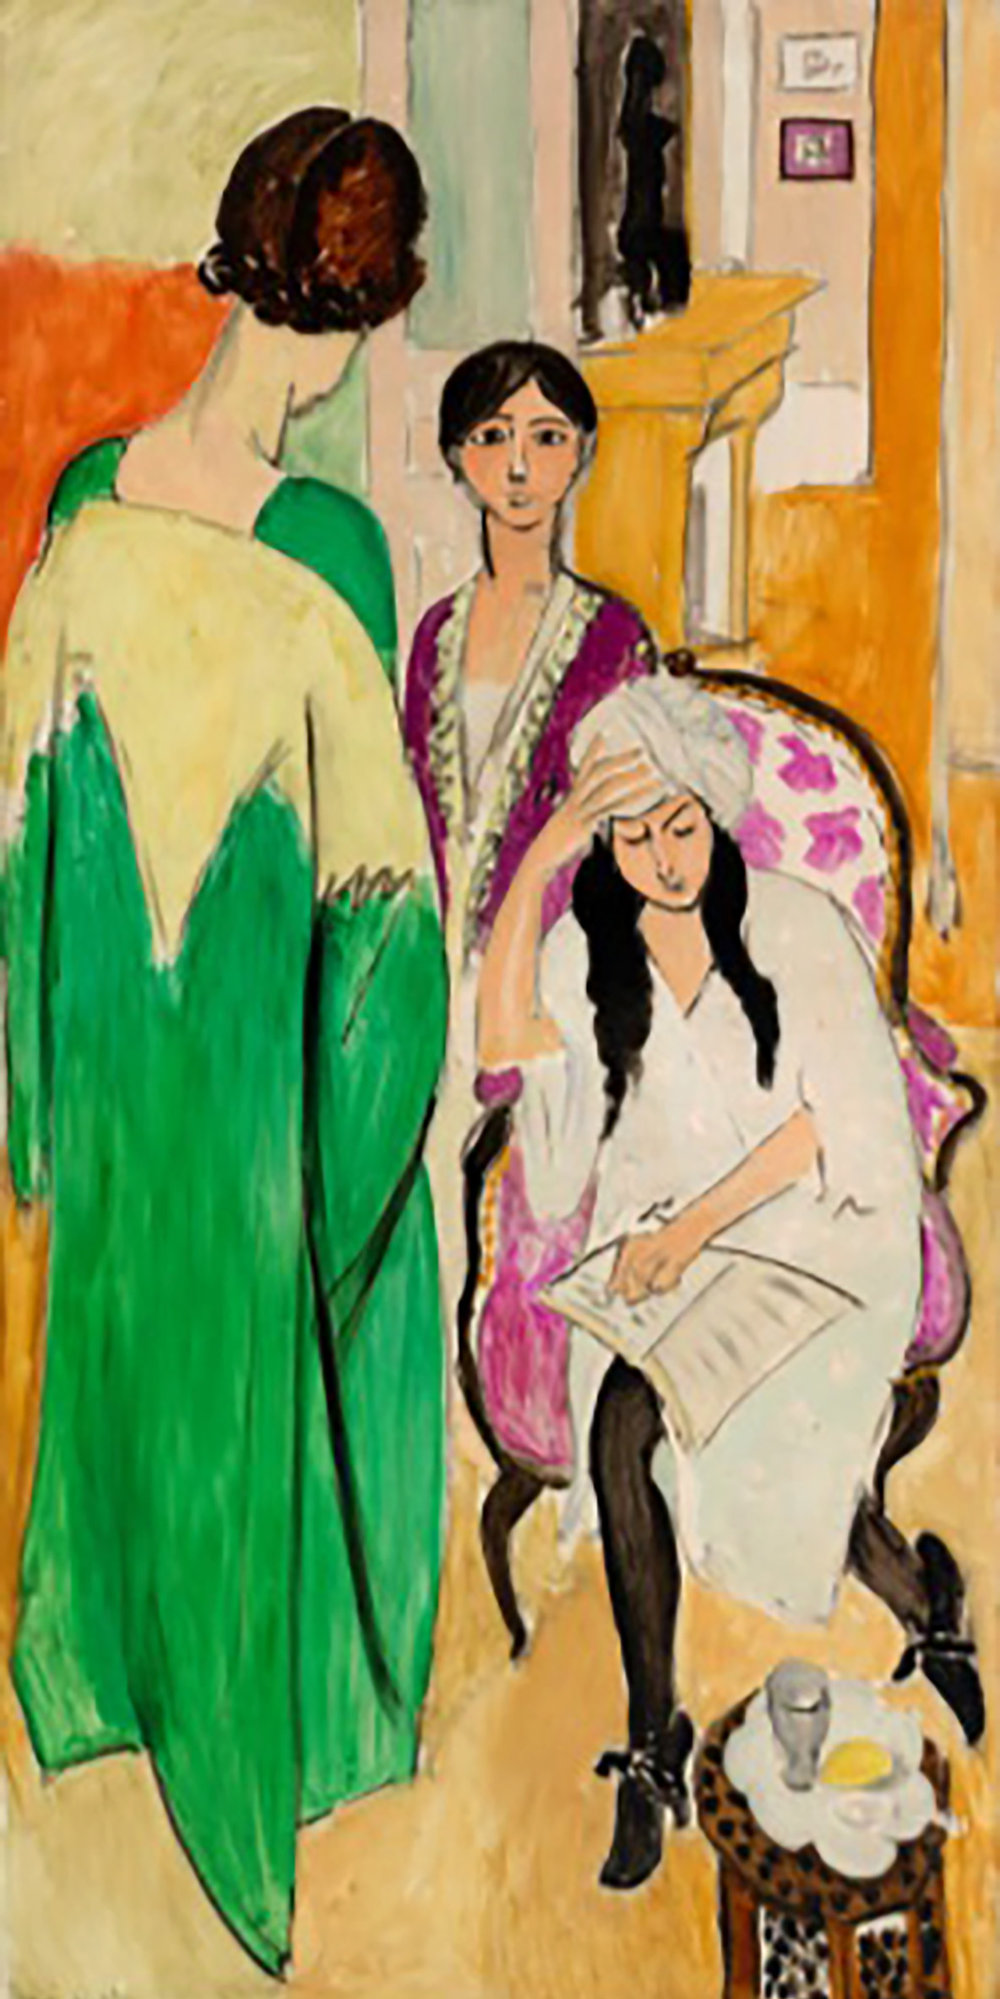 Henri Matisse. Three Sisters with an African Sculpture (Les Trois sœurs à la sculpture africaine), between May and mid-July 1917. Oil on canvas, Overall: 77 1/8 x 38 1/4 in. (195.9 x 97.2 cm). BF363. In Copyright. ©2017 Succession H. Matisse / Artists Rights Society (ARS), New York.